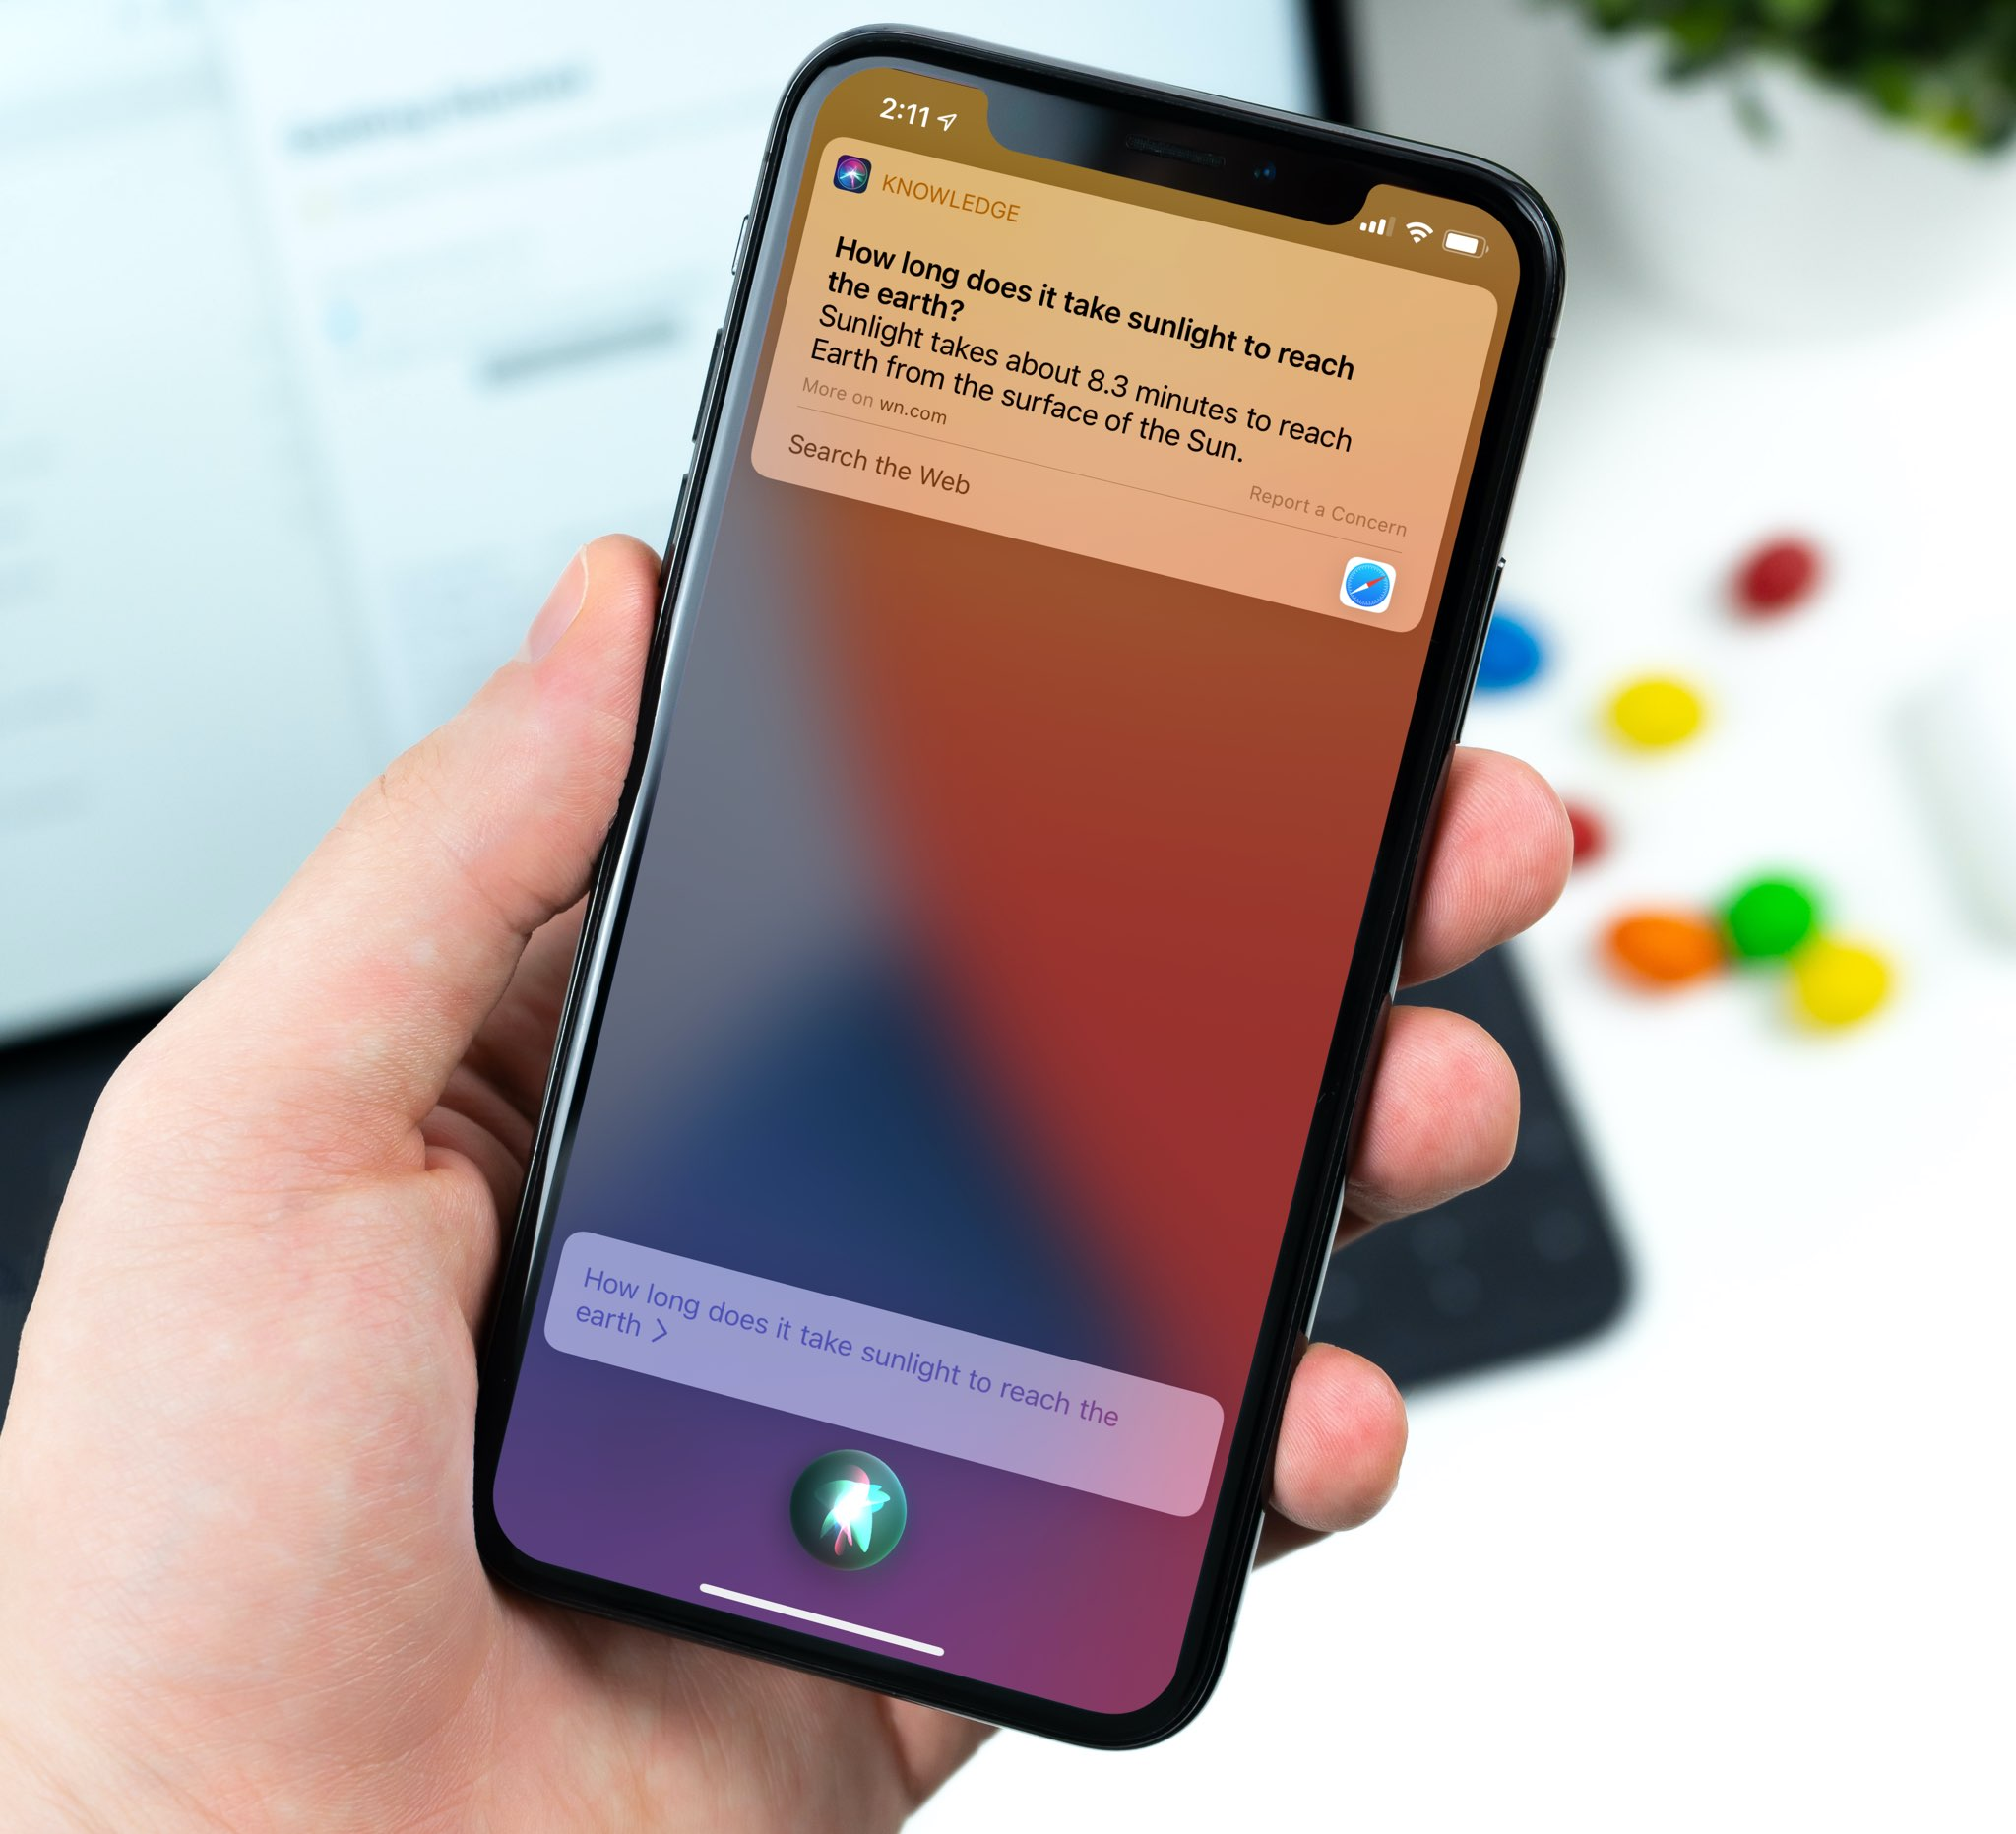 iOS 14: How to enable live Siri transcriptions of spoken requests on iPhone